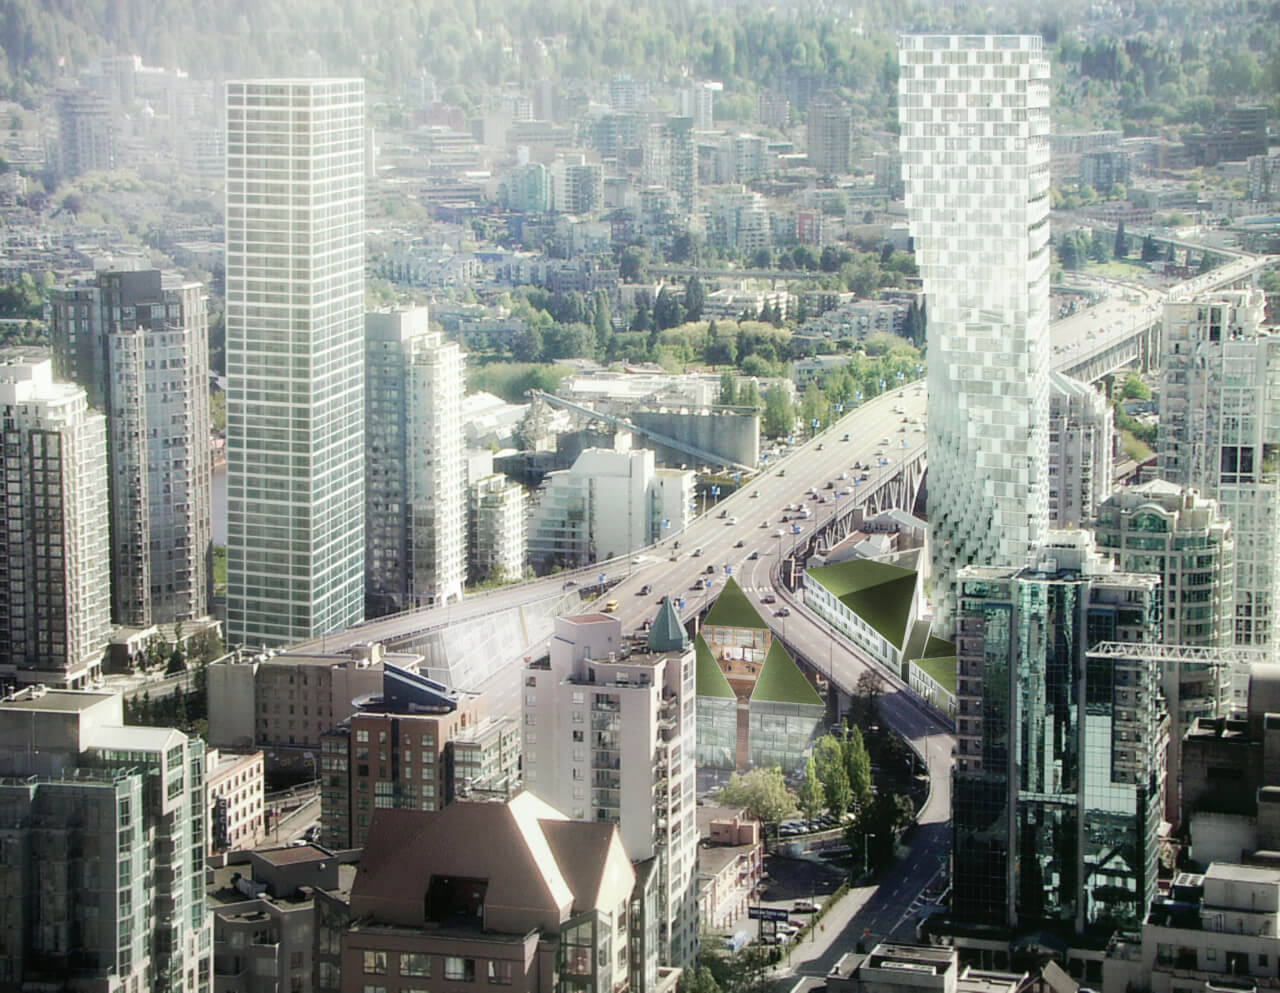 Vancouver House, a twisting cantilevered tower